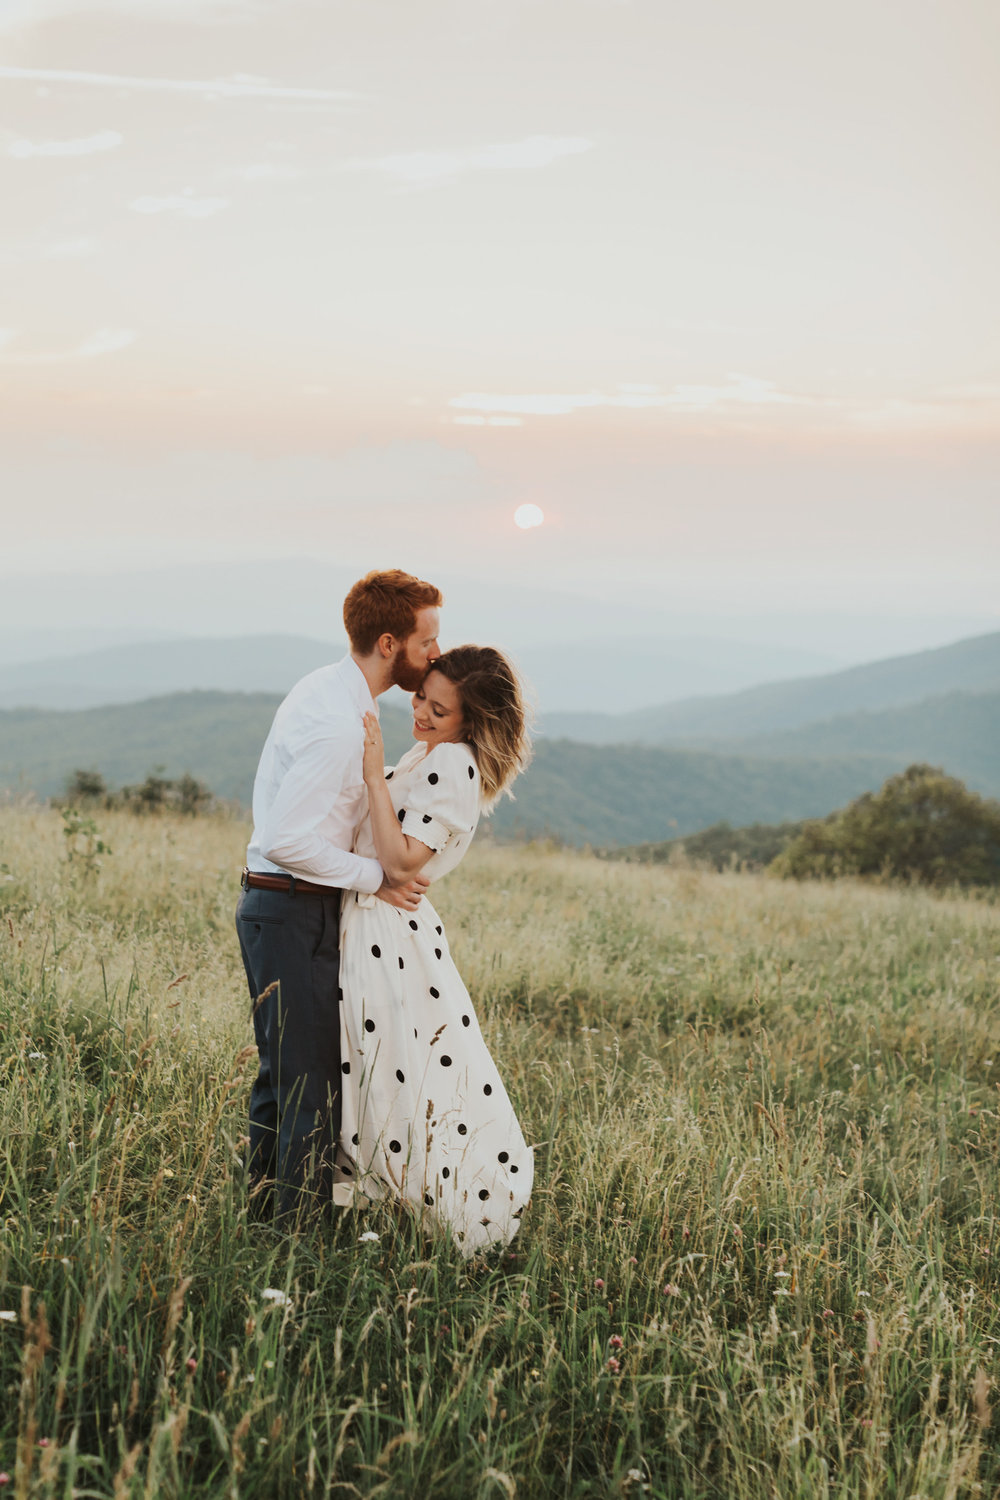 BlueRidgeMountains_NashvilleWeddingPhotographer_MollyPeach_MaxPatch-6472.jpg